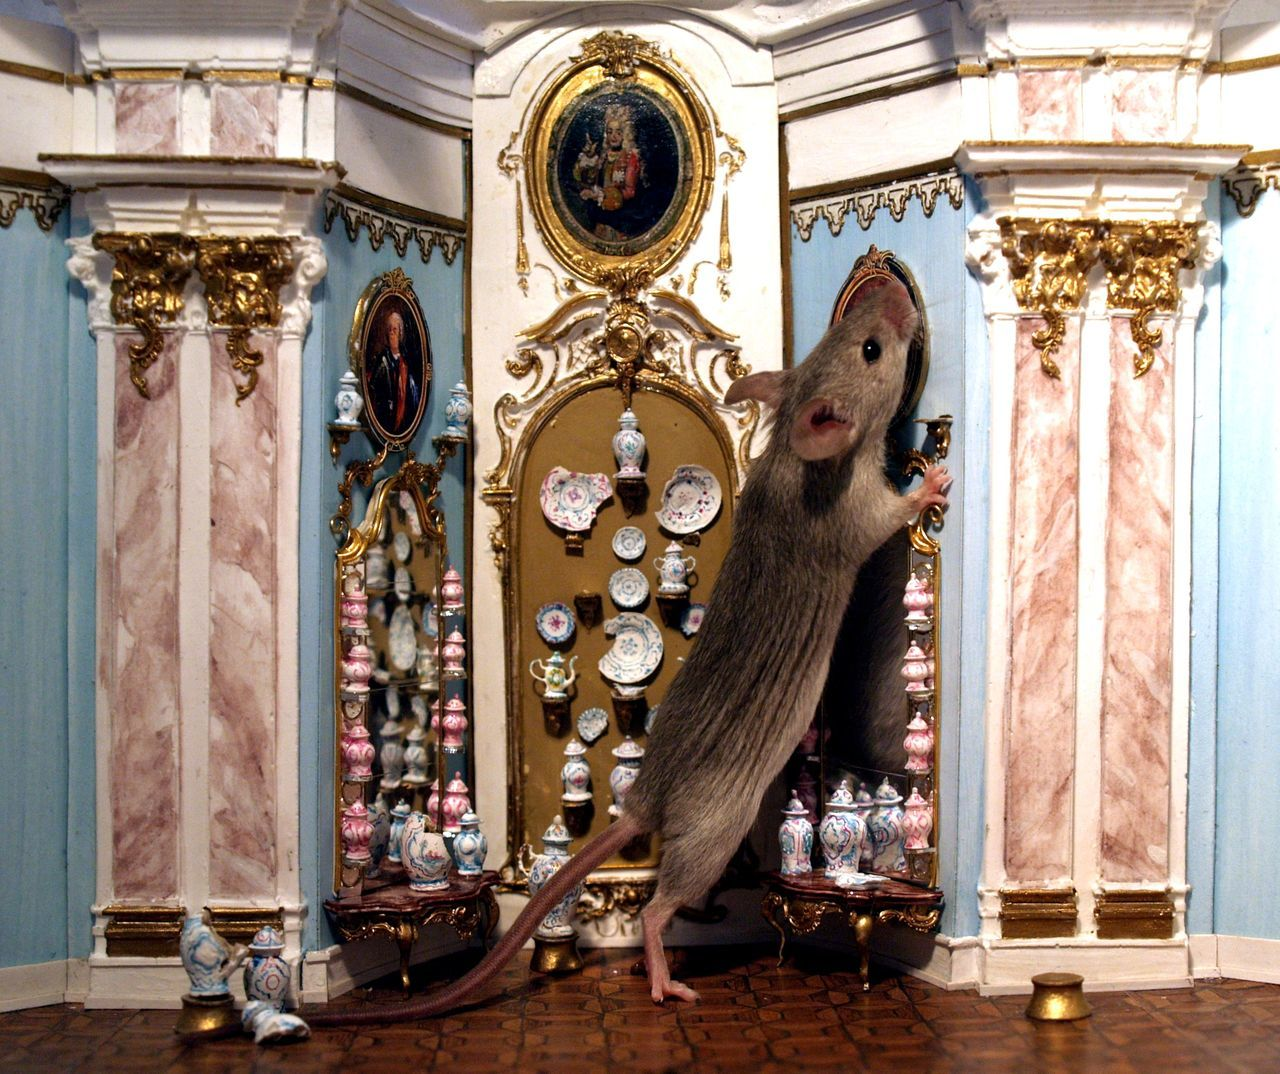 Anknabbern Eating Fressen Indoors  Kurios Kurioses  Maus Mouse Mouseaction Mouses Mause Odd Quaint  Quaint Animals Quaint House Quaint Mouses Rokoko Schloss Schräges Strange Strange Animals Strange Mouses Wandteller